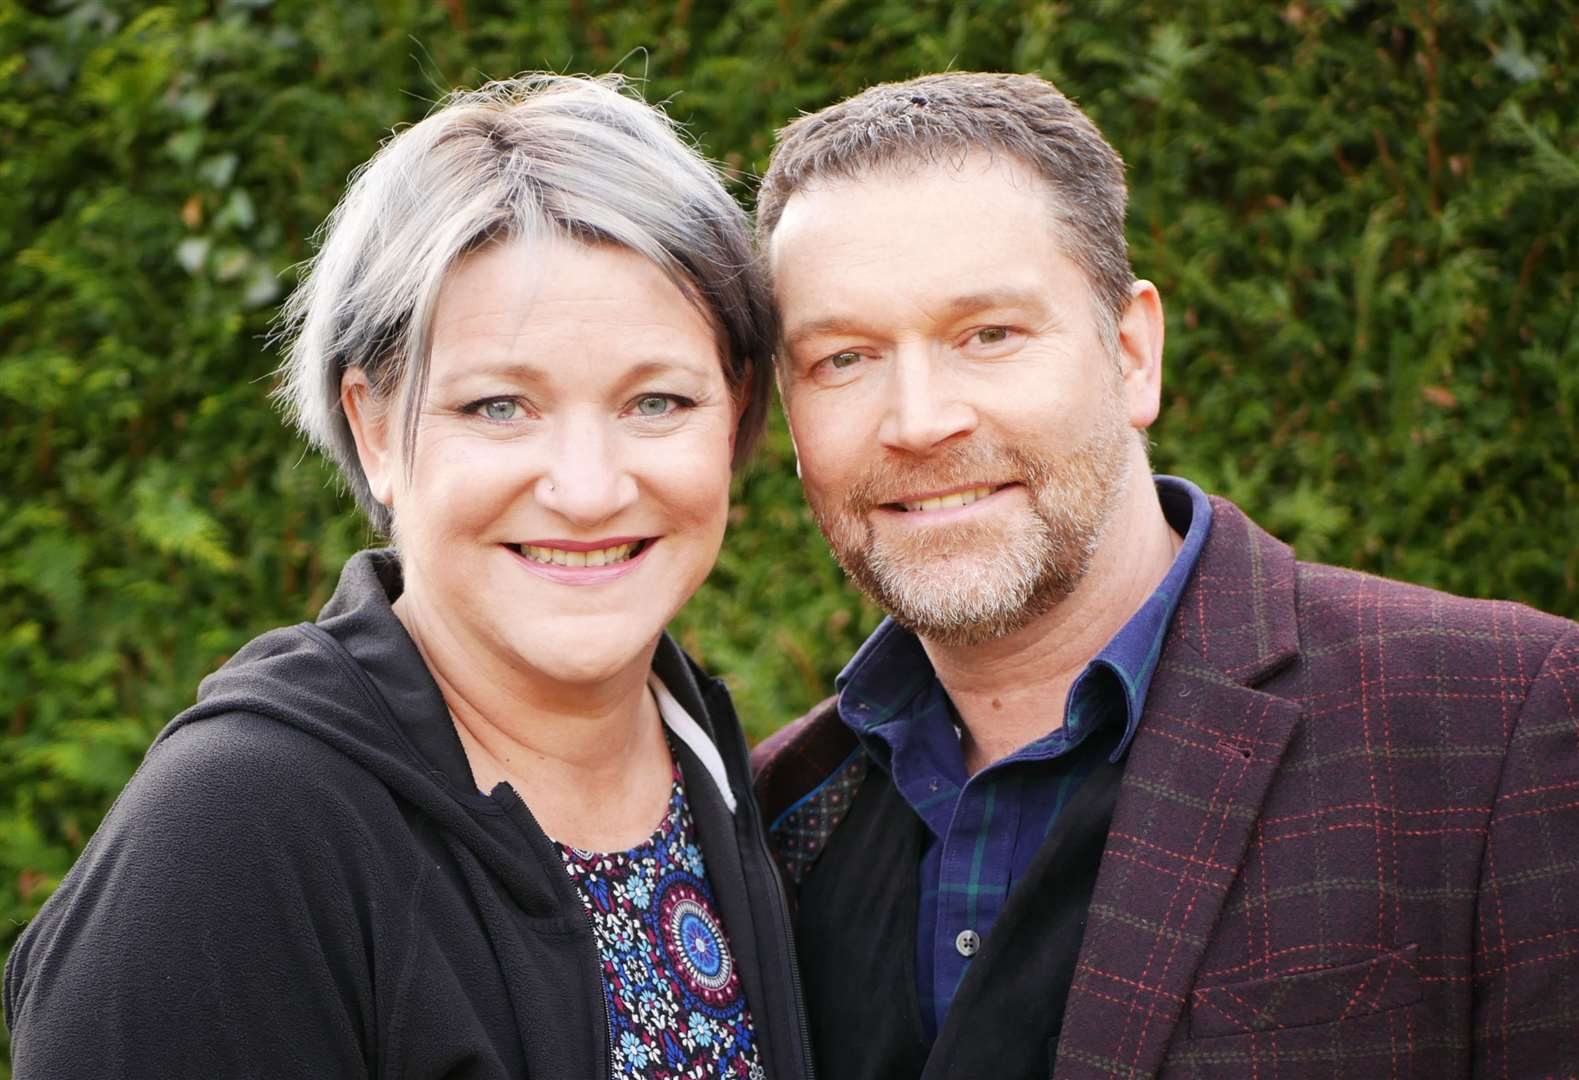 Foster parents Naomi Dobbs and Andrew Keeping, from Sutton Valence